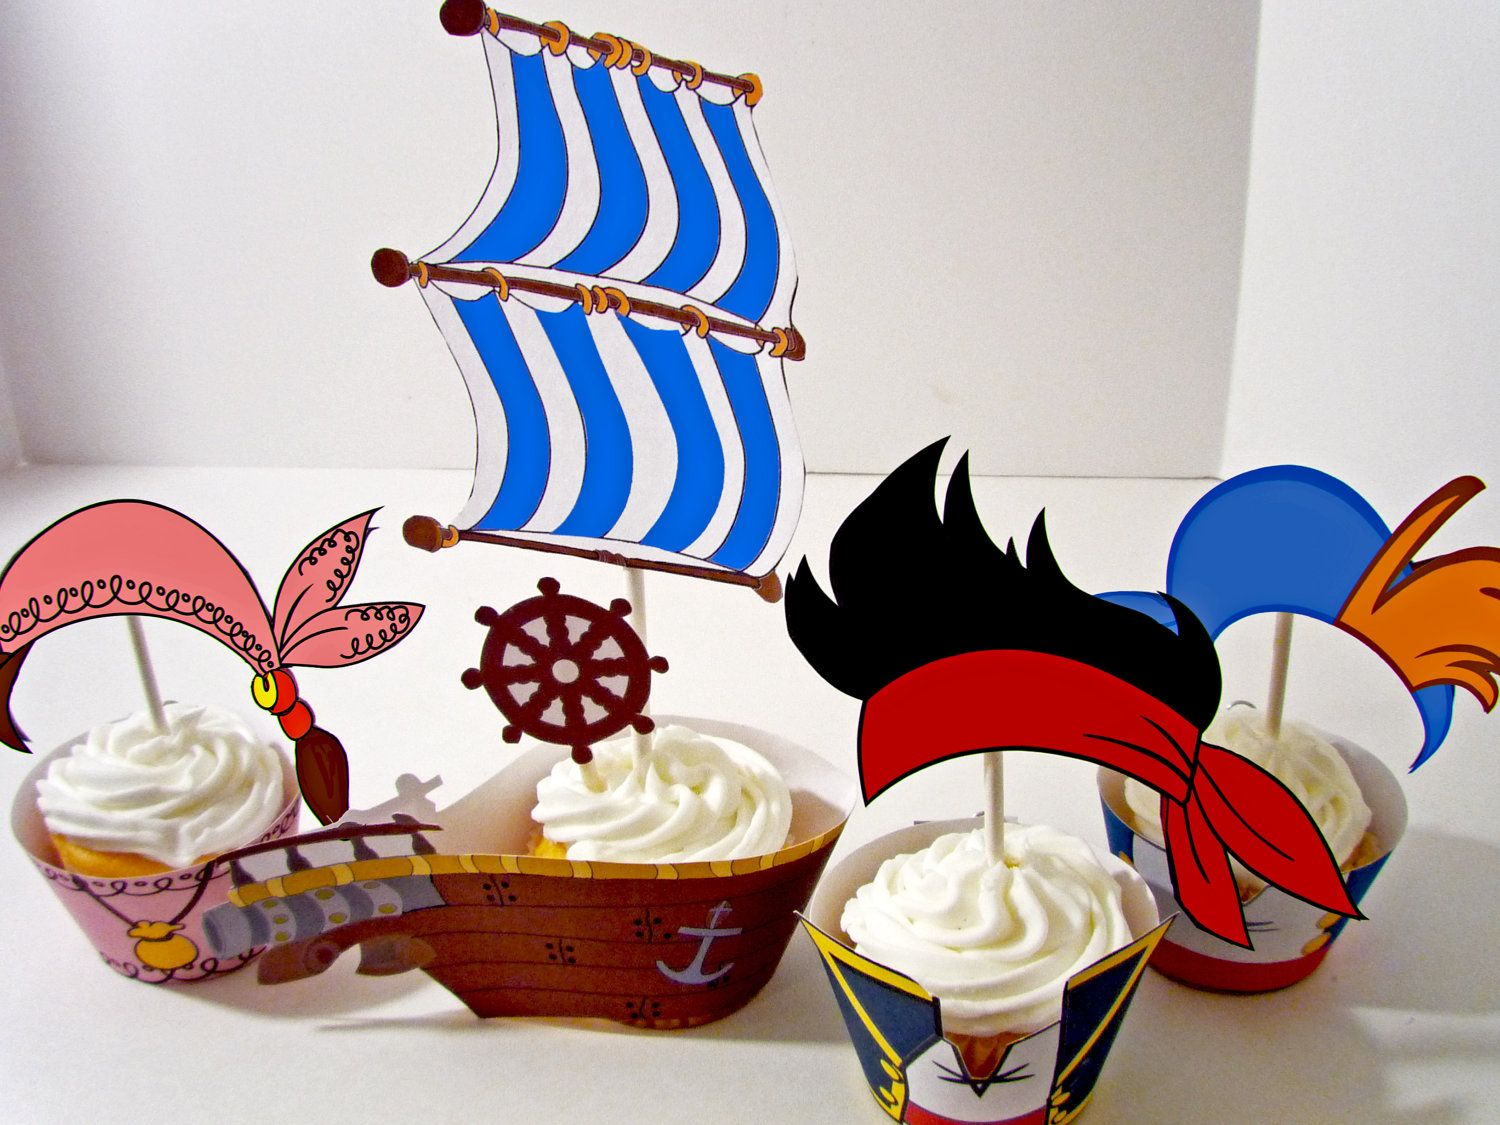 Decoraci n jake y los piratas de nunca jam s pictures to pin on - Instant Download Printable Party Diy Jake And The Neverland Pirates Inspired Cupcake Toppers And Wrappers